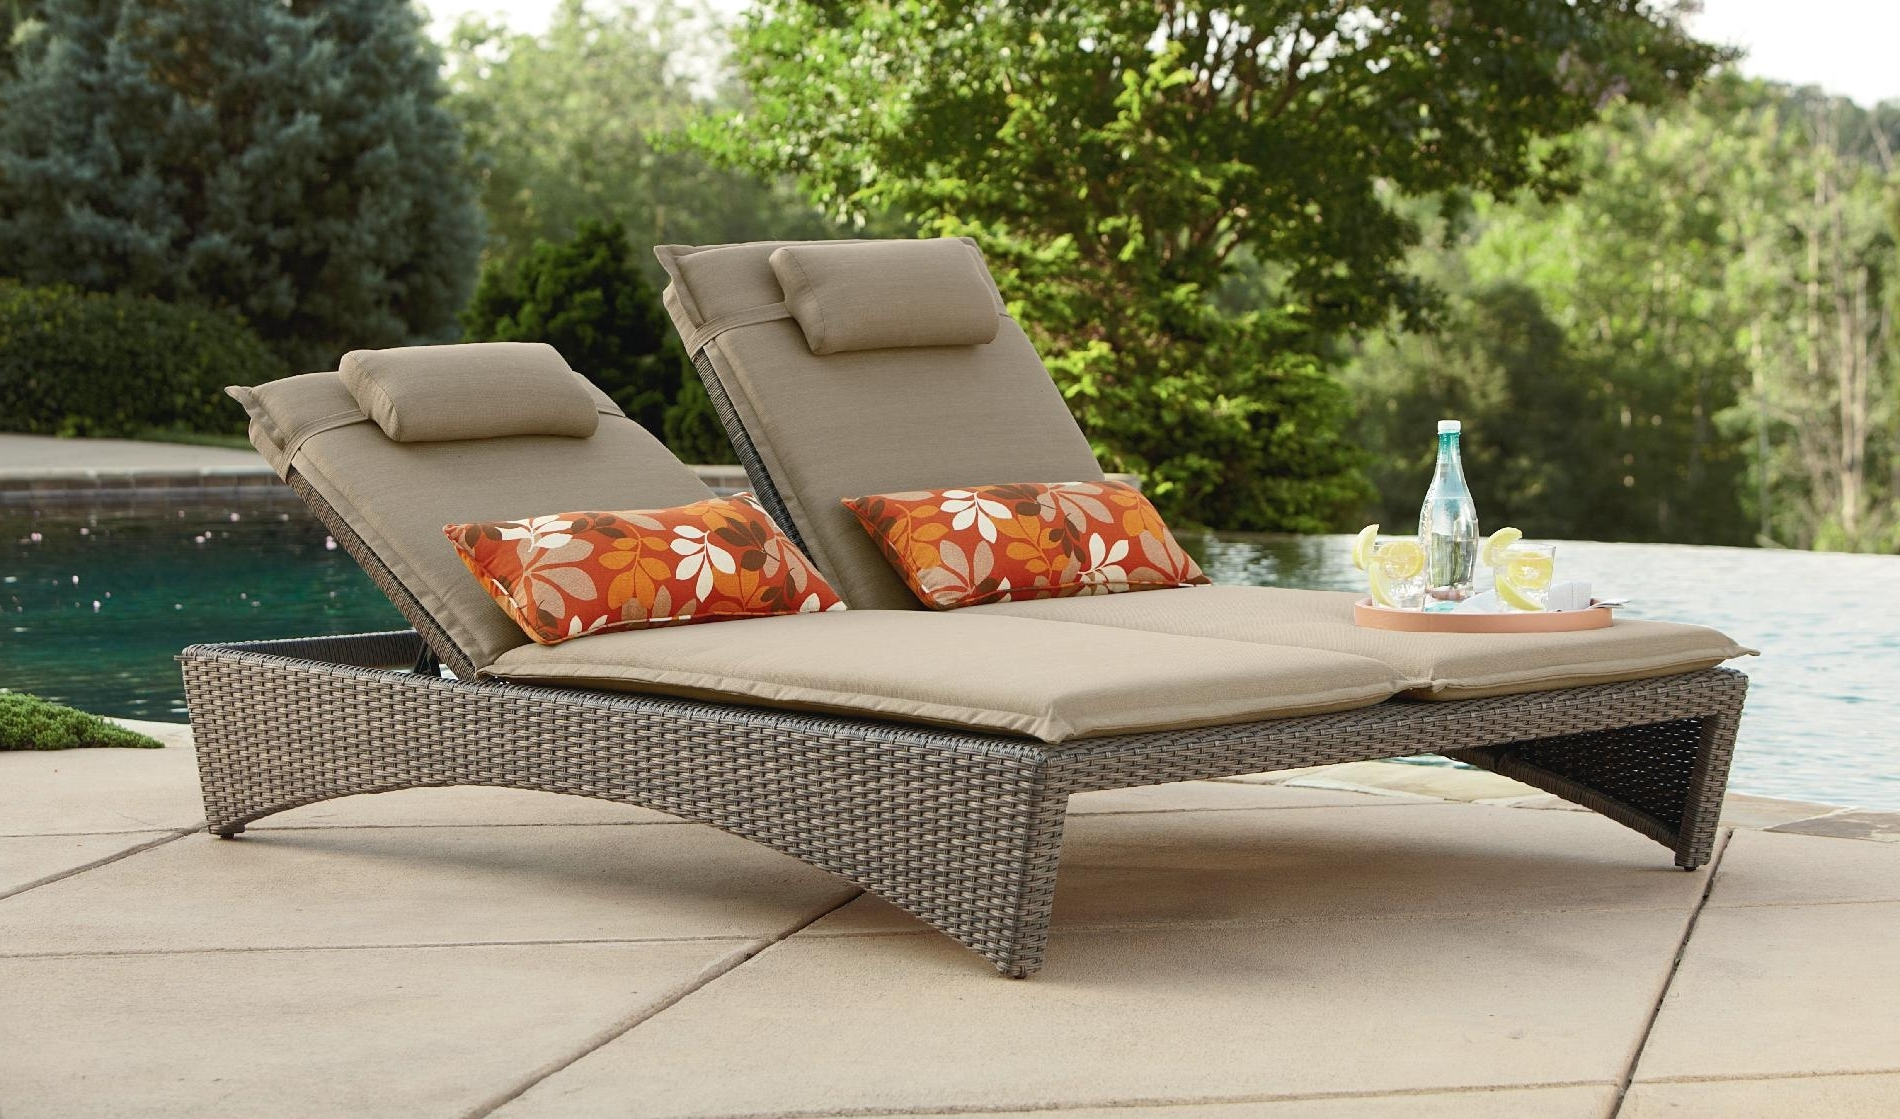 Most Recently Released Best Pool Chaise Lounge Chairs — Bed And Shower : Decorating Pool Regarding Outdoor Pool Furniture Chaise Lounges (View 6 of 15)